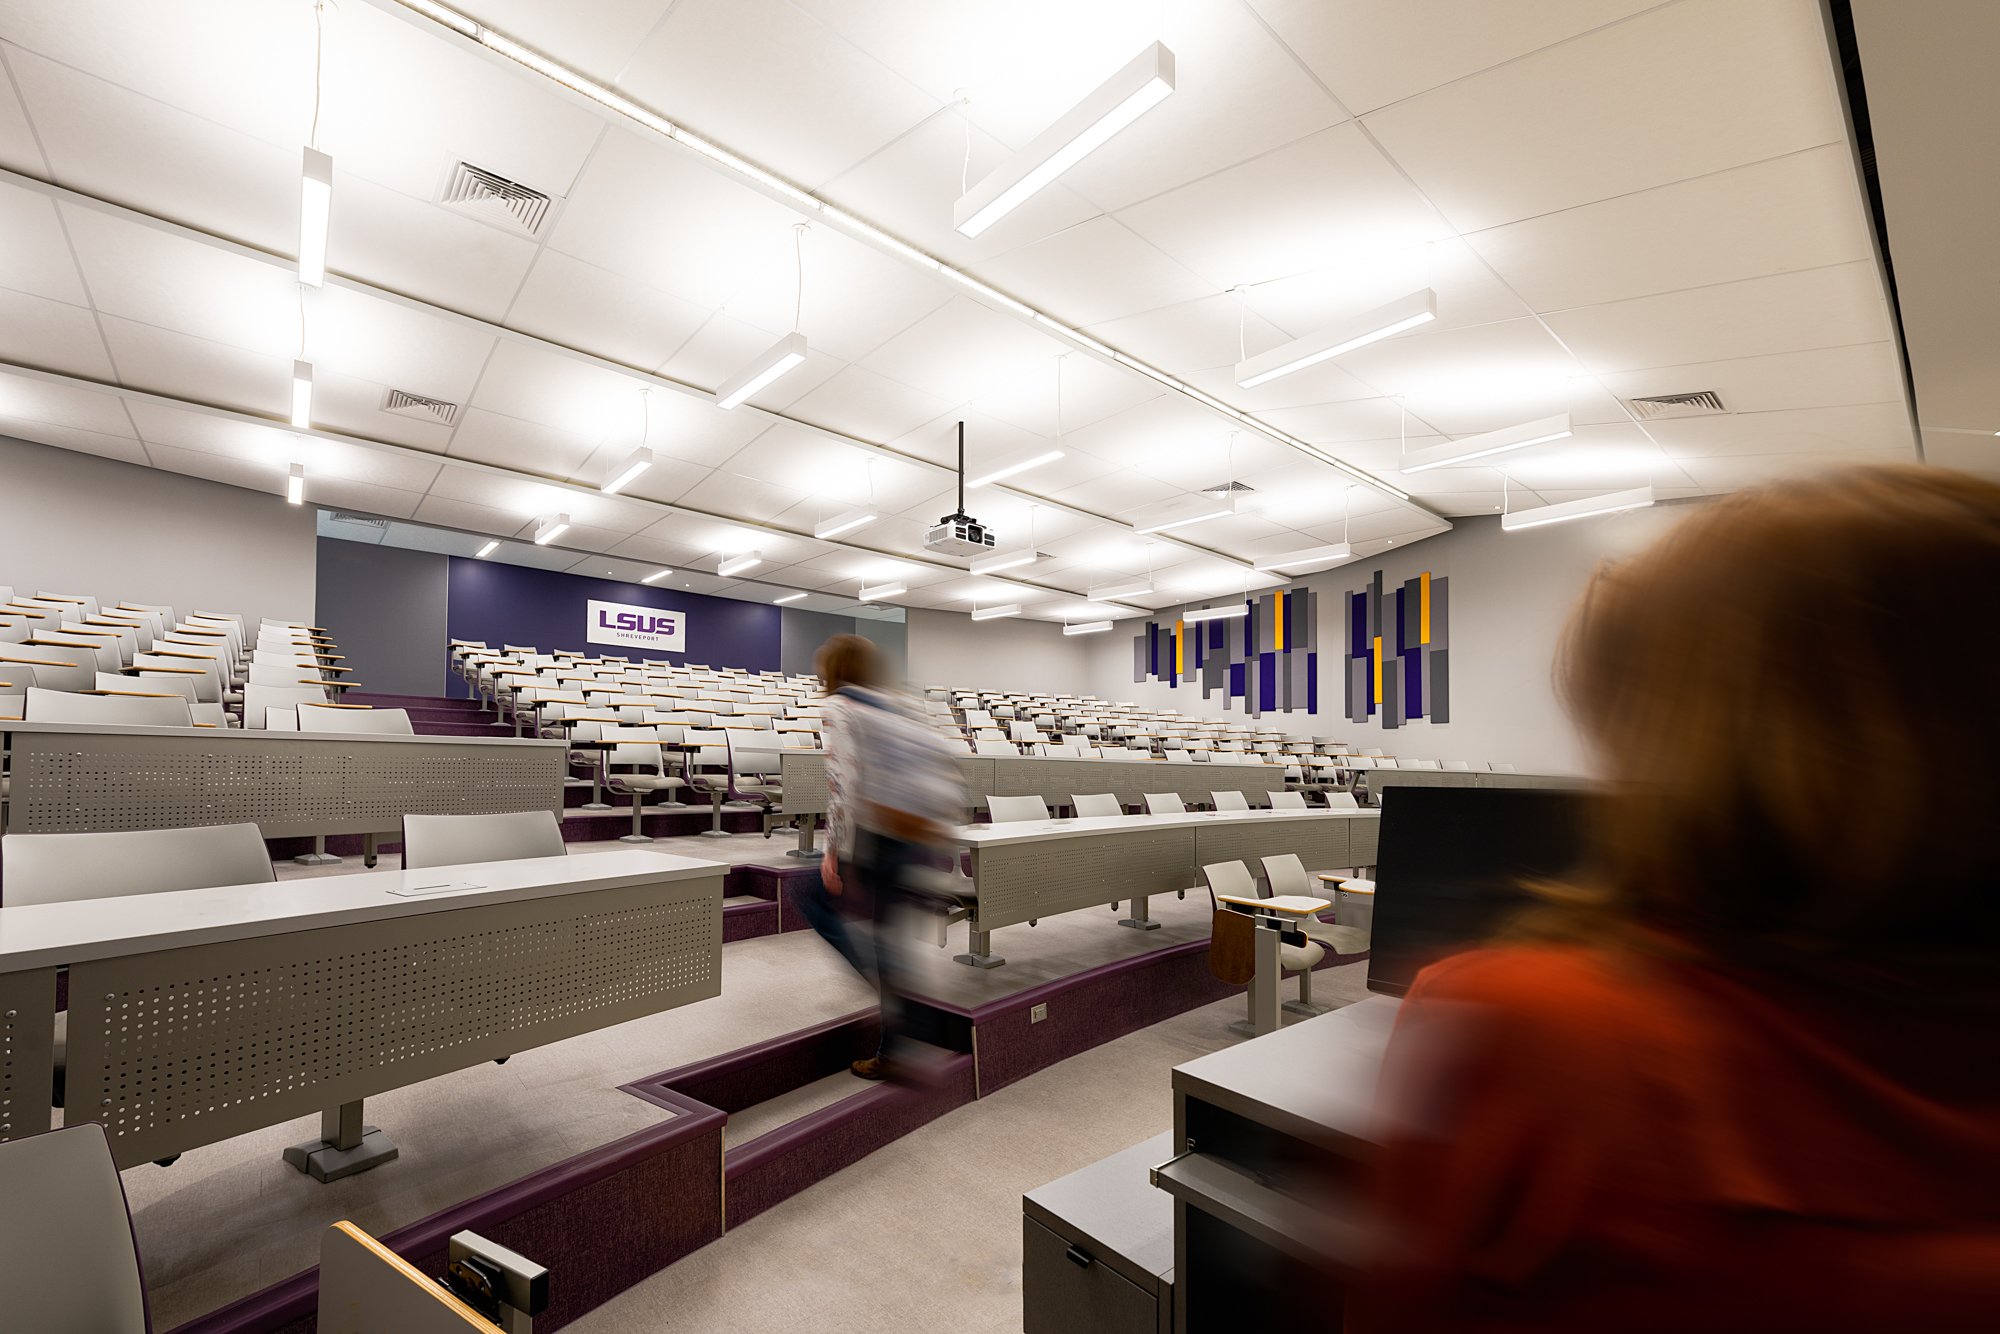 LSUS Auditorium with students and staff